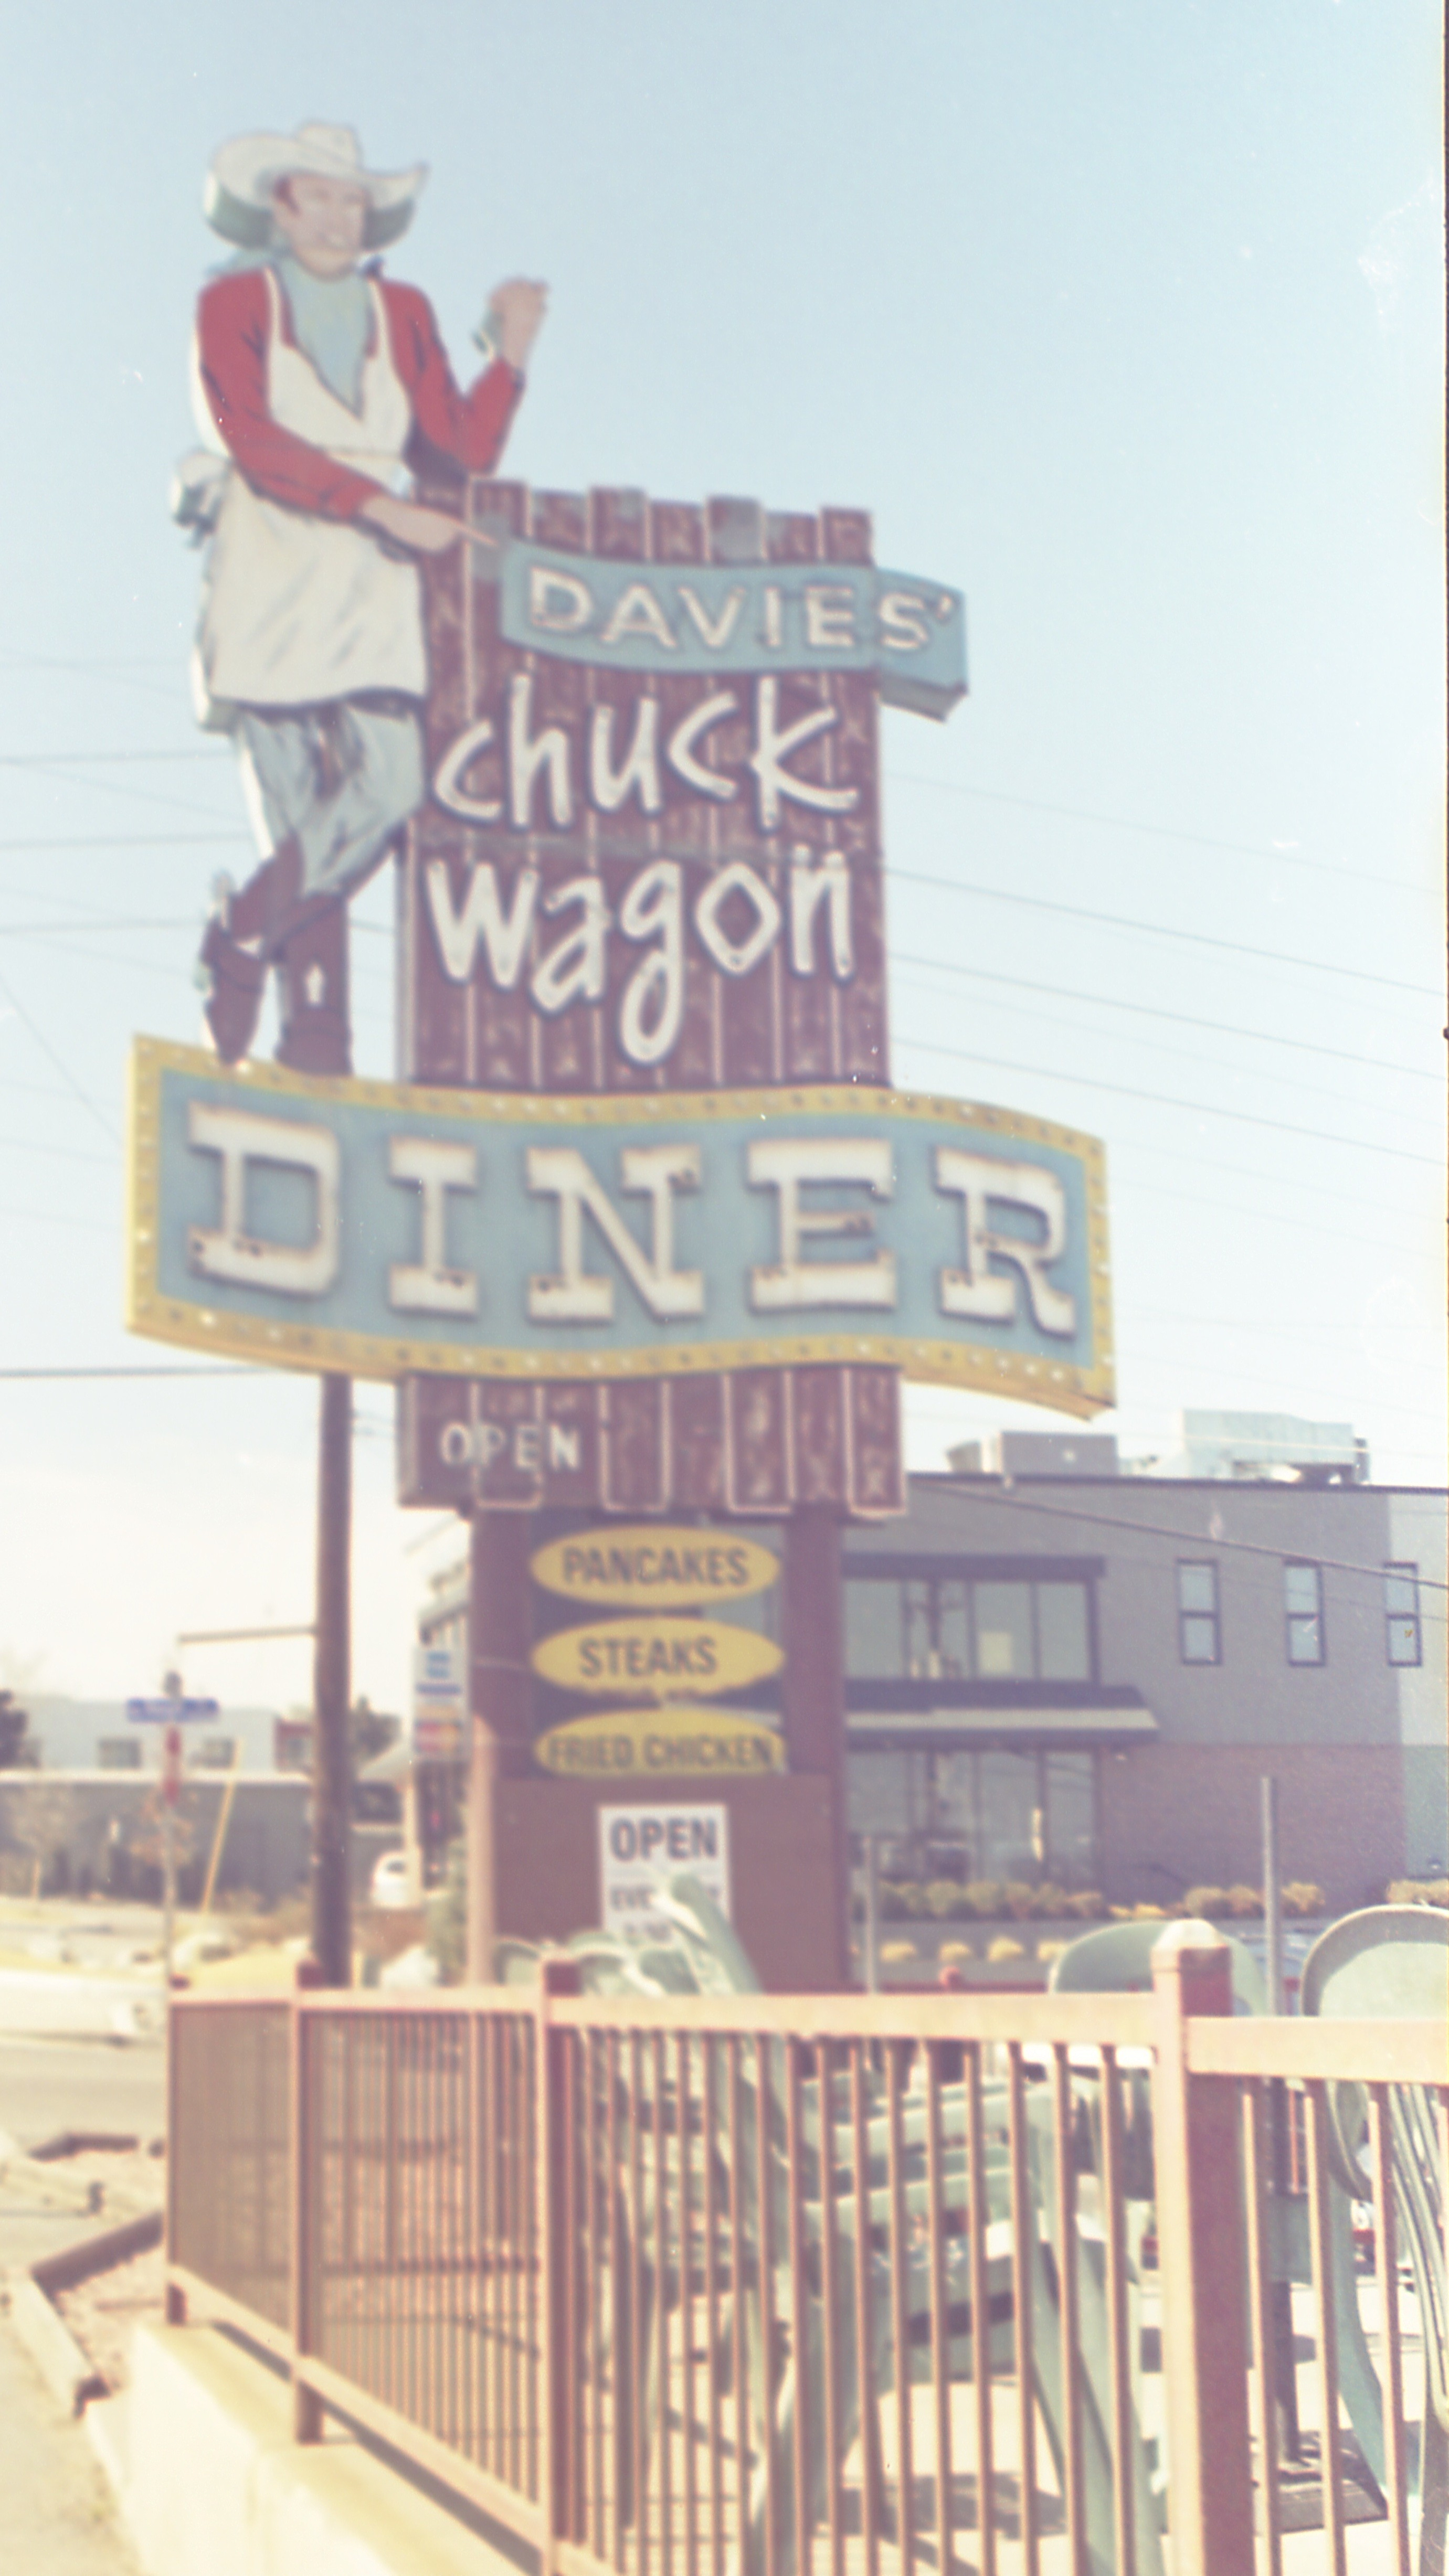 Davies Chuck Wagon sign.jpg